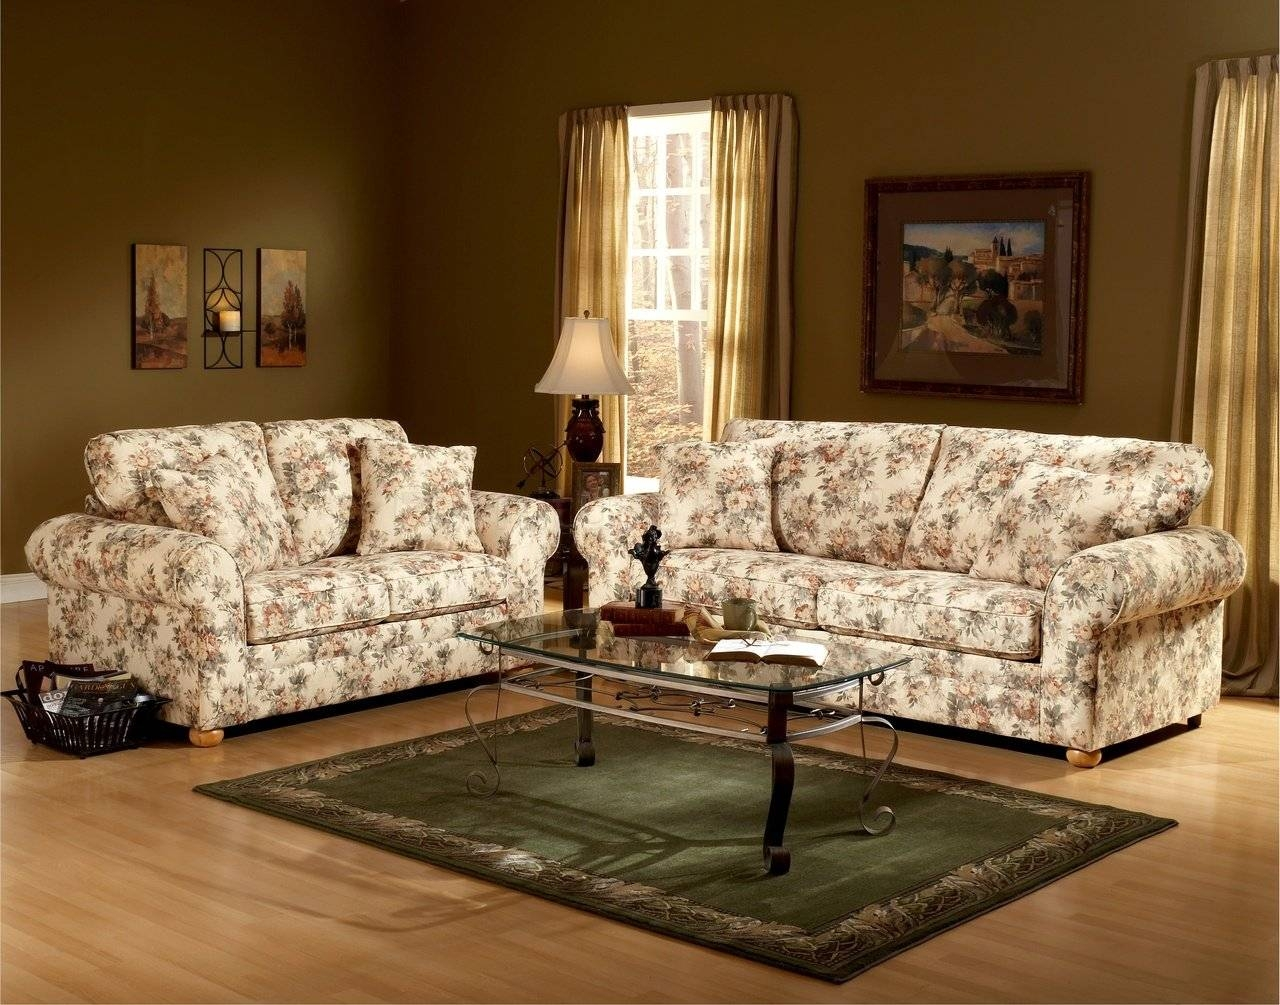 Floral Sofas | Sofas Decoration for Floral Sofas and Chairs (Image 10 of 15)